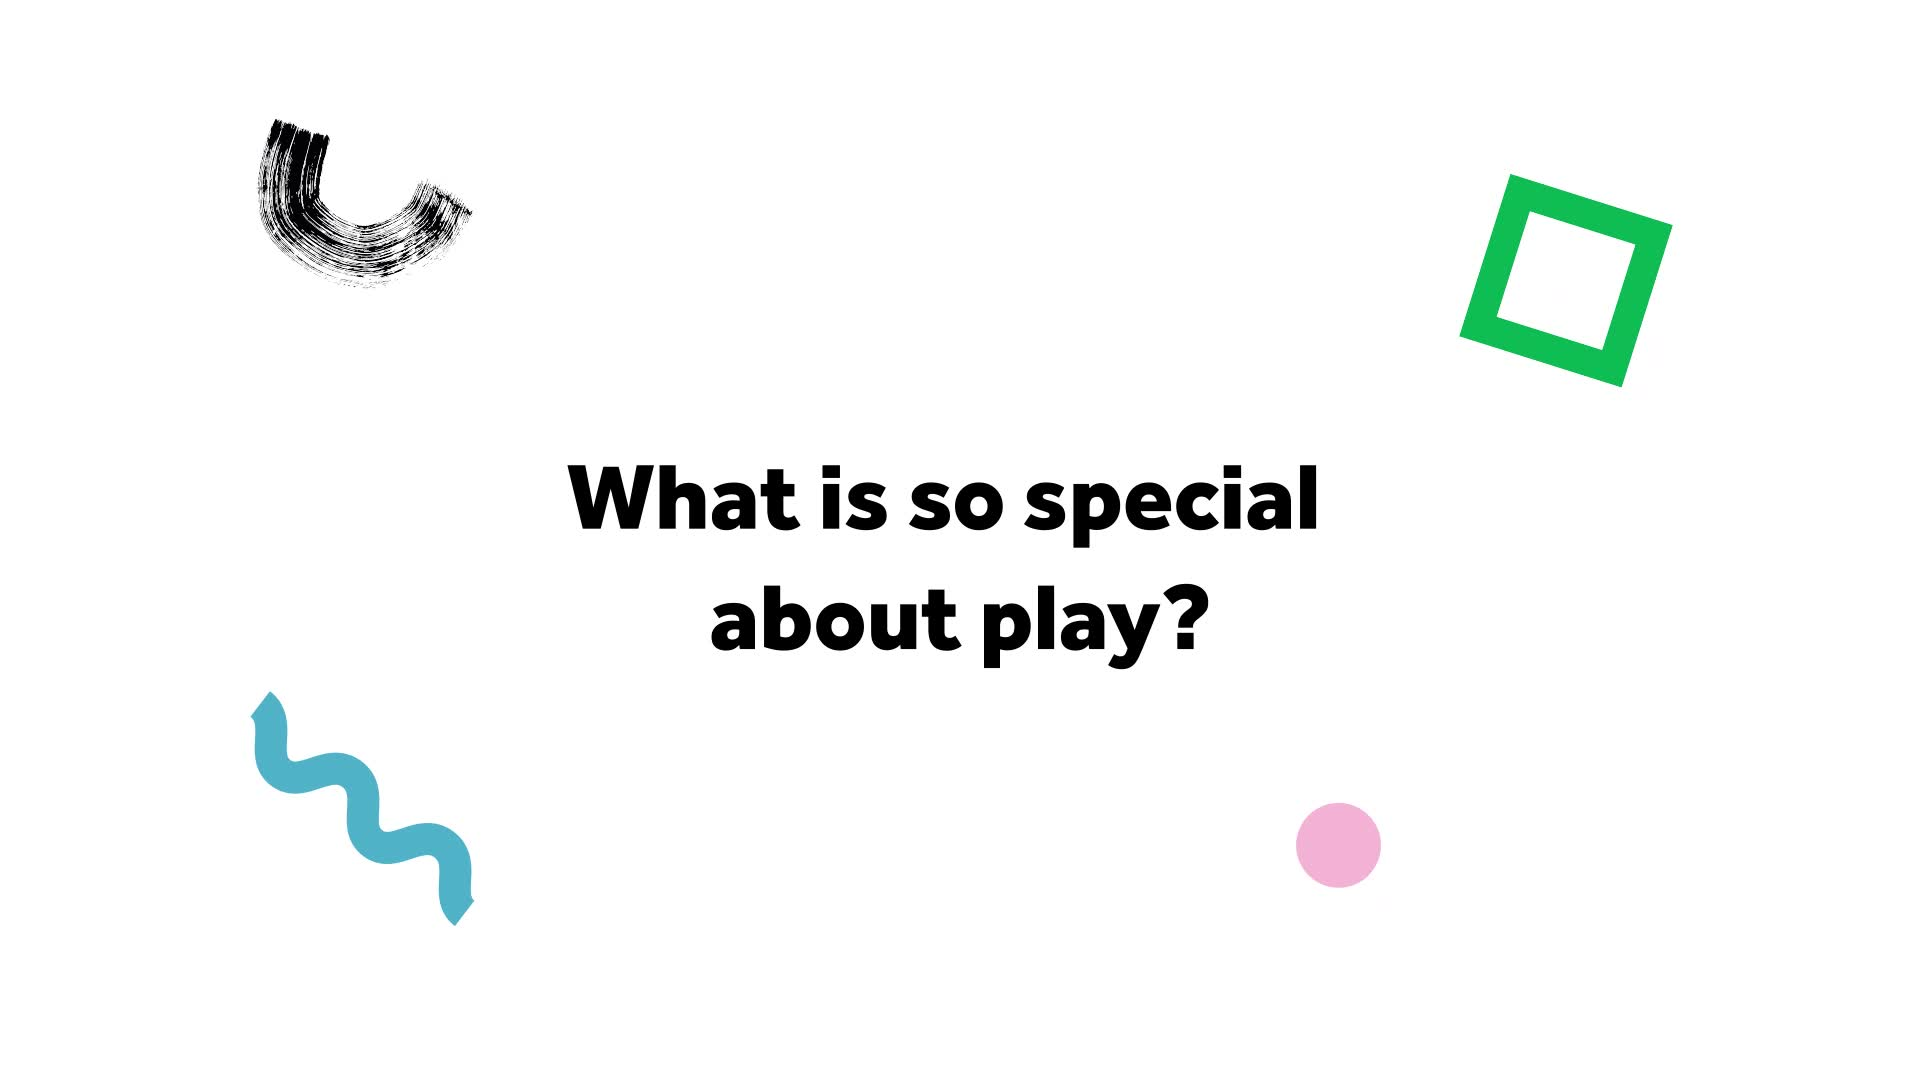 What is so special about play?